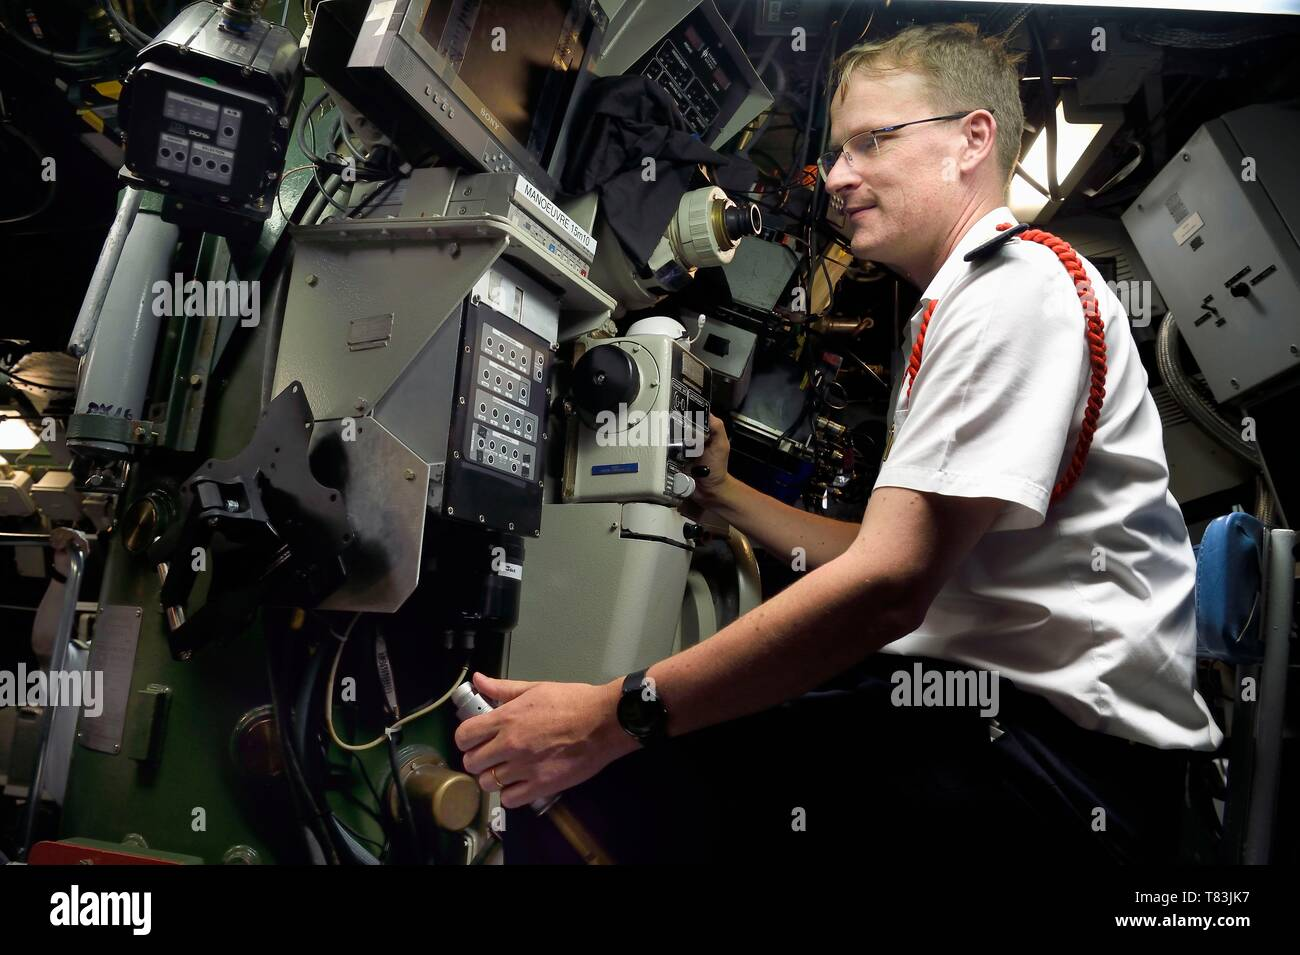 France, Var, Toulon, the naval base (Arsenal), Commander Nicolas Faure at periscope in the central navigation and operation room, Commander of the nuclear attack submarine (SNA) Casabianca (Rubis type) Stock Photo